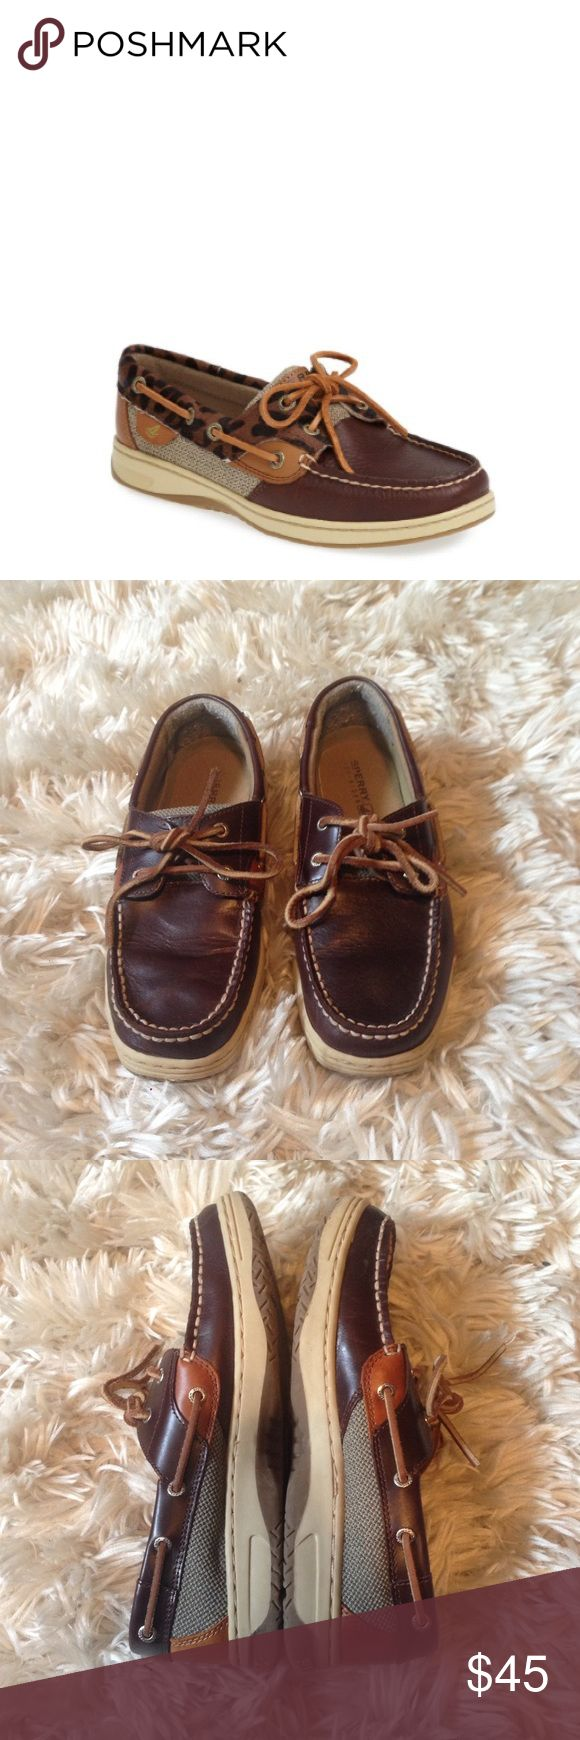 Dark Brown Sperry Top Sider 5.5 •Like new condition • No fading • No signs of wear besides some pilling on the inside of heel• Sperry Top-Sider Shoes Flats & Loafers